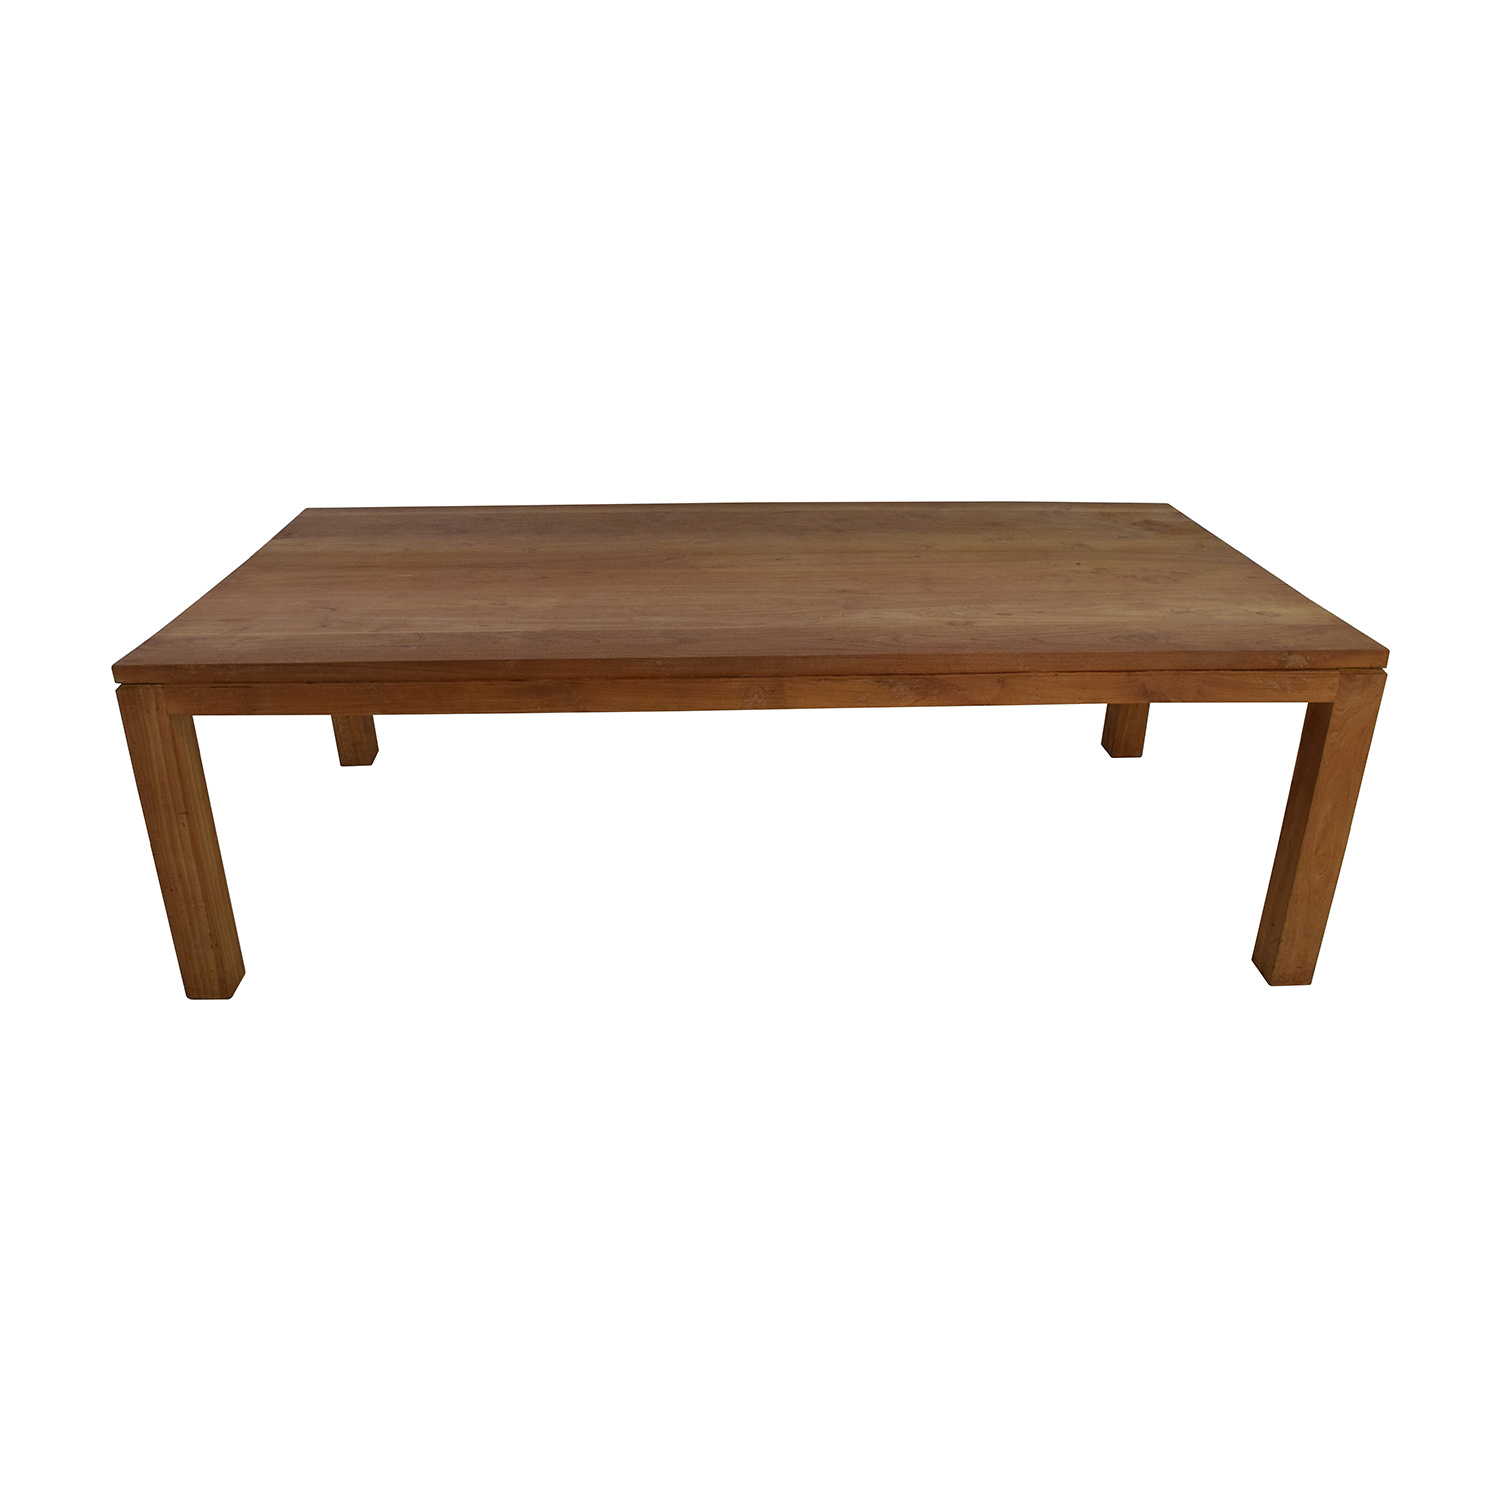 Crate and Barrel Crate and Barrel Wood Conference Table coupon